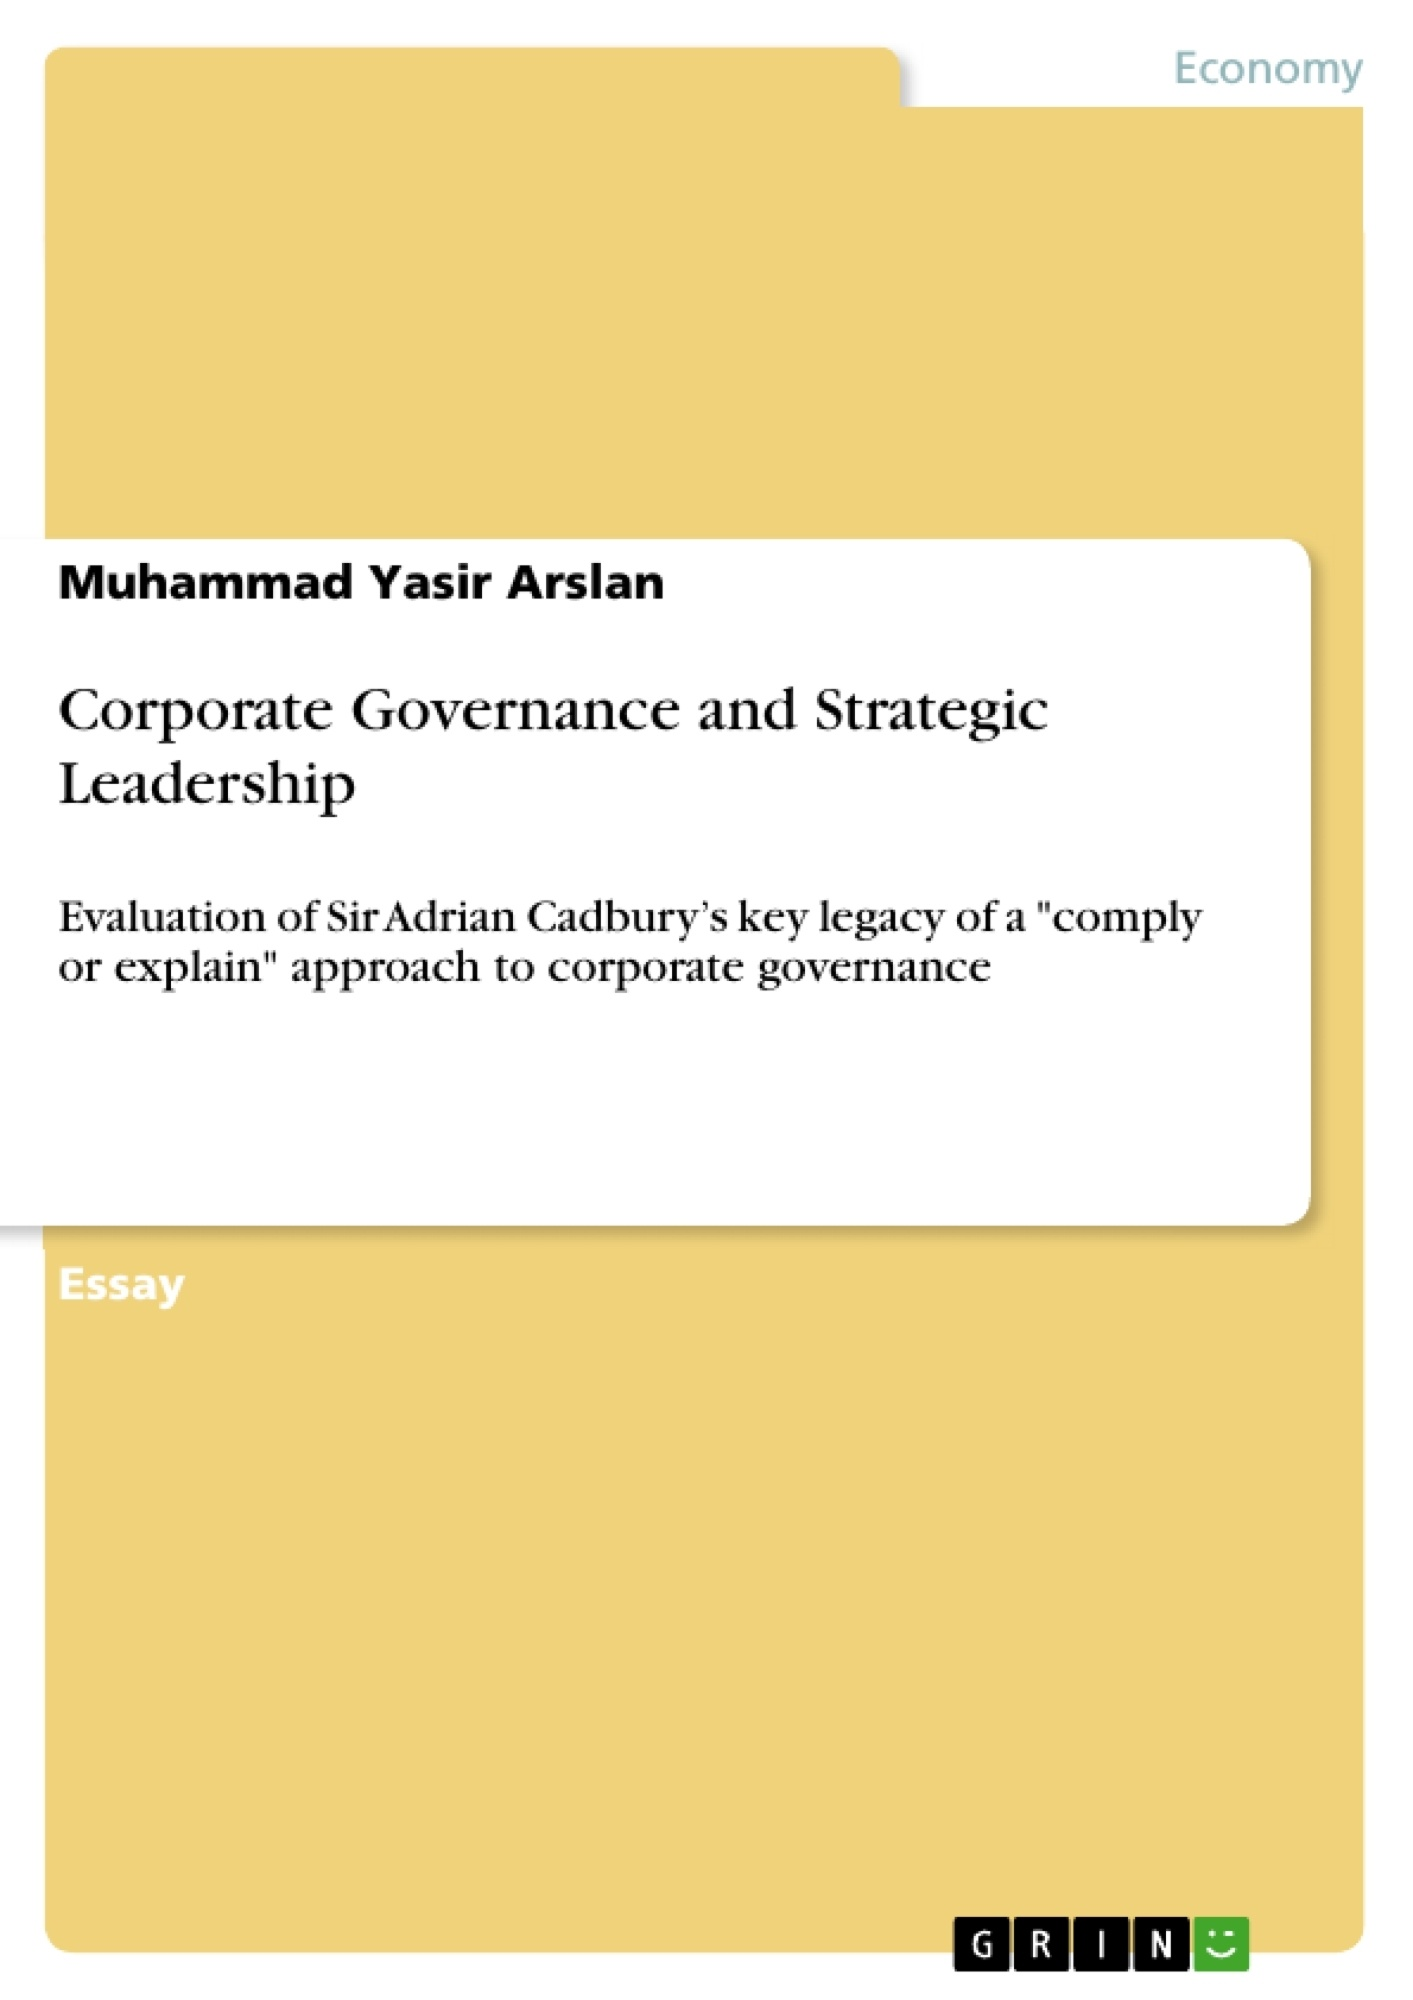 Title: Corporate Governance and Strategic Leadership